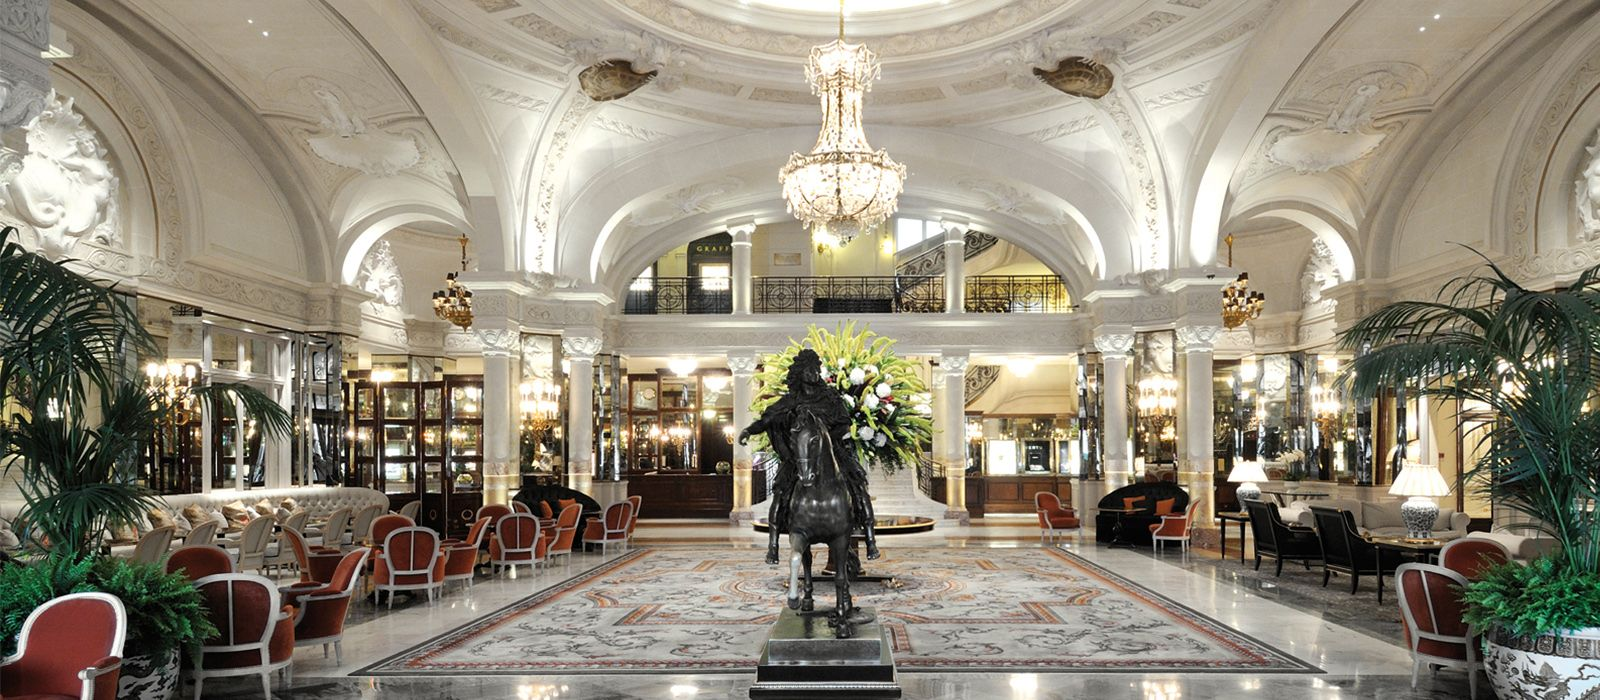 Images Wedding Venues Mythical Venue In Monaco Weddings Abroad Experts